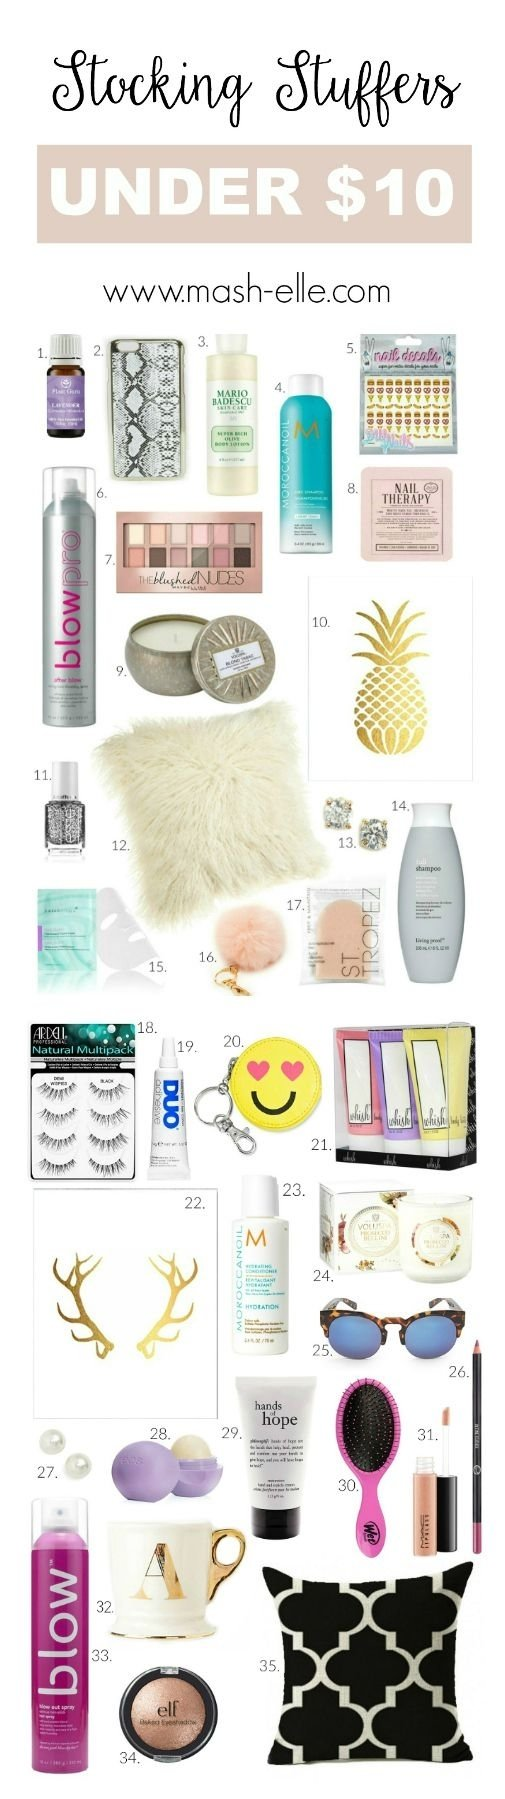 10 Lovable Gift Ideas For 22 Year Old Male 80 best gift ideas images on pinterest gift ideas best gift ideas 3 2021